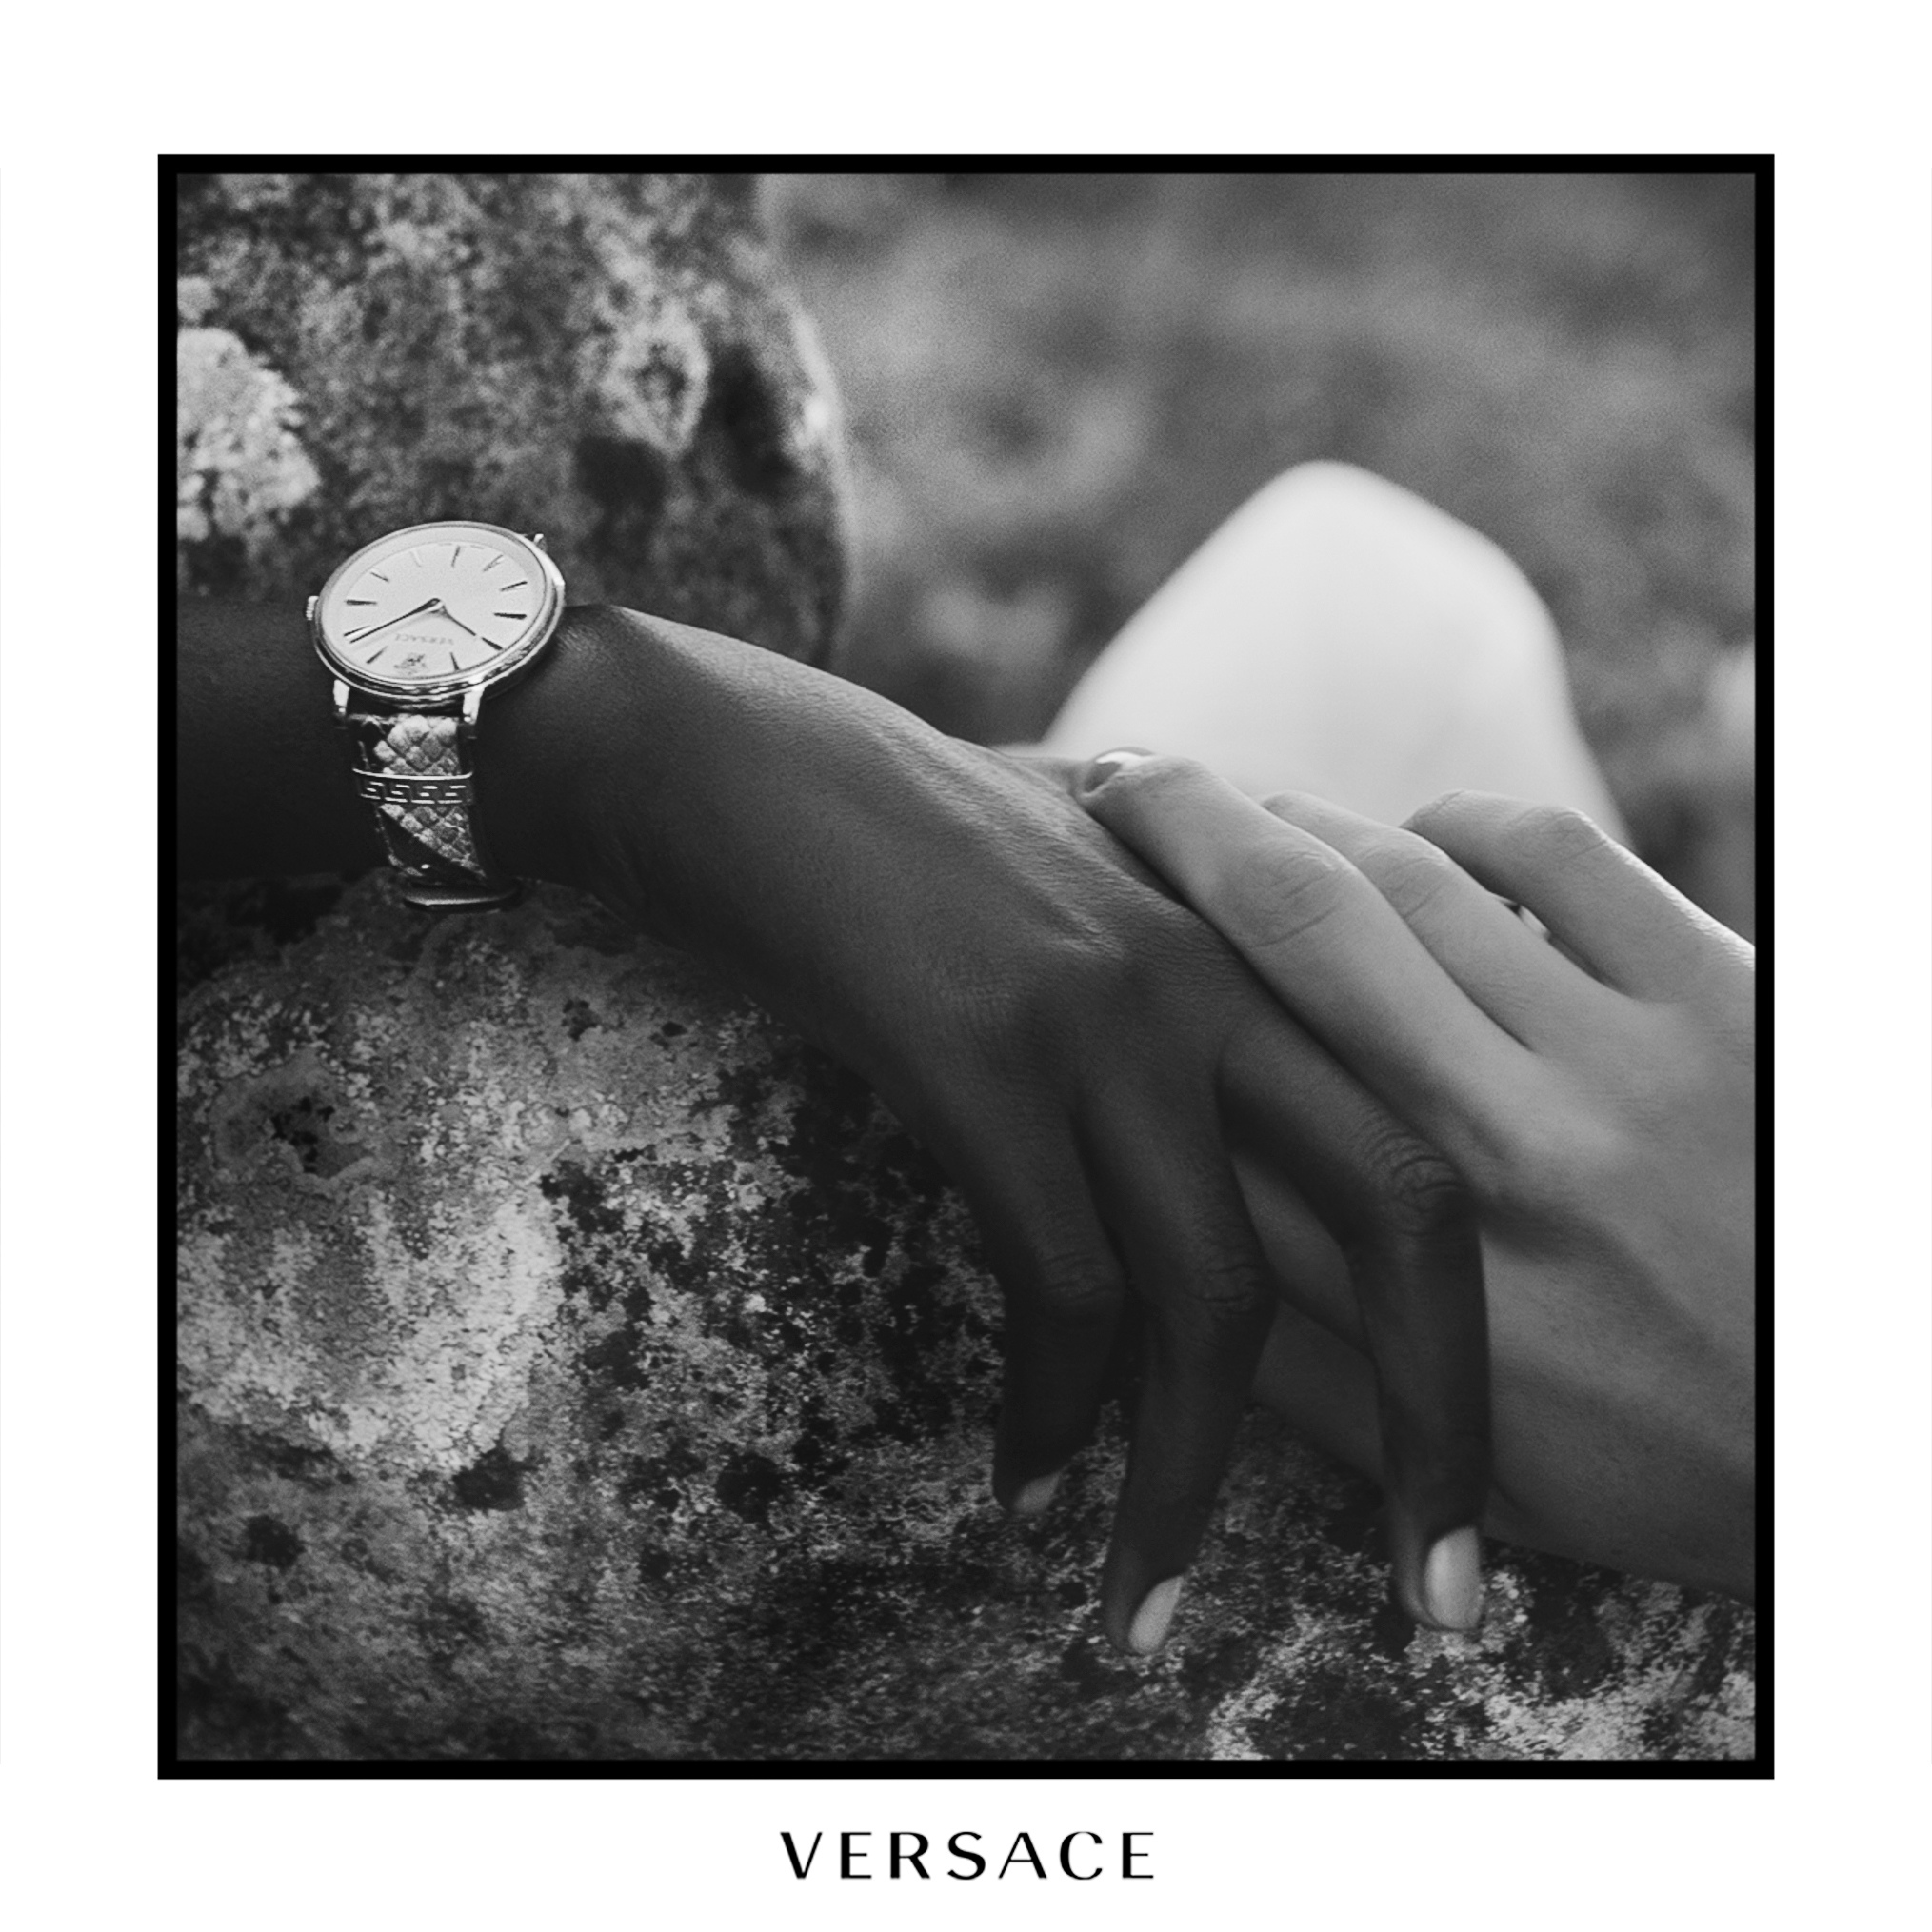 Versace Manifesto Special Video - Project Frames - Courtesy of Versace Press Office